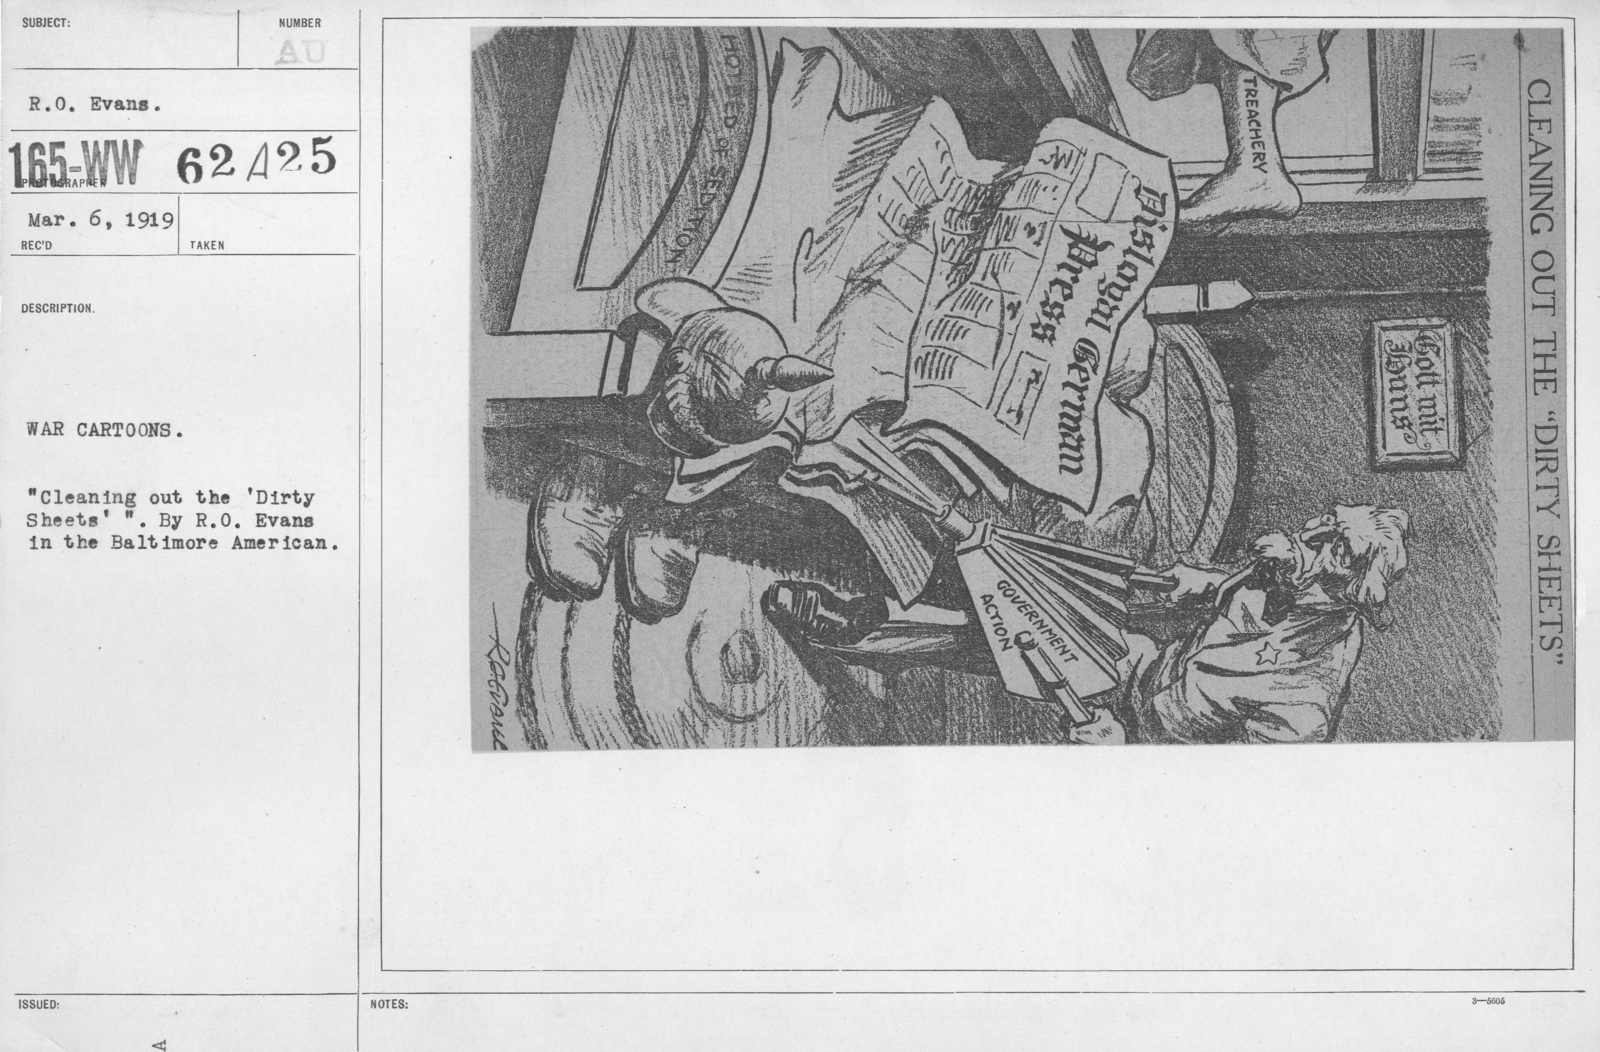 """Artists - American Artworks (Wartime Cartoons) - War Cartoons. """"Cleaning out the 'Dirty Sheets'."""" By R.O. Evans in the Baltimore American"""